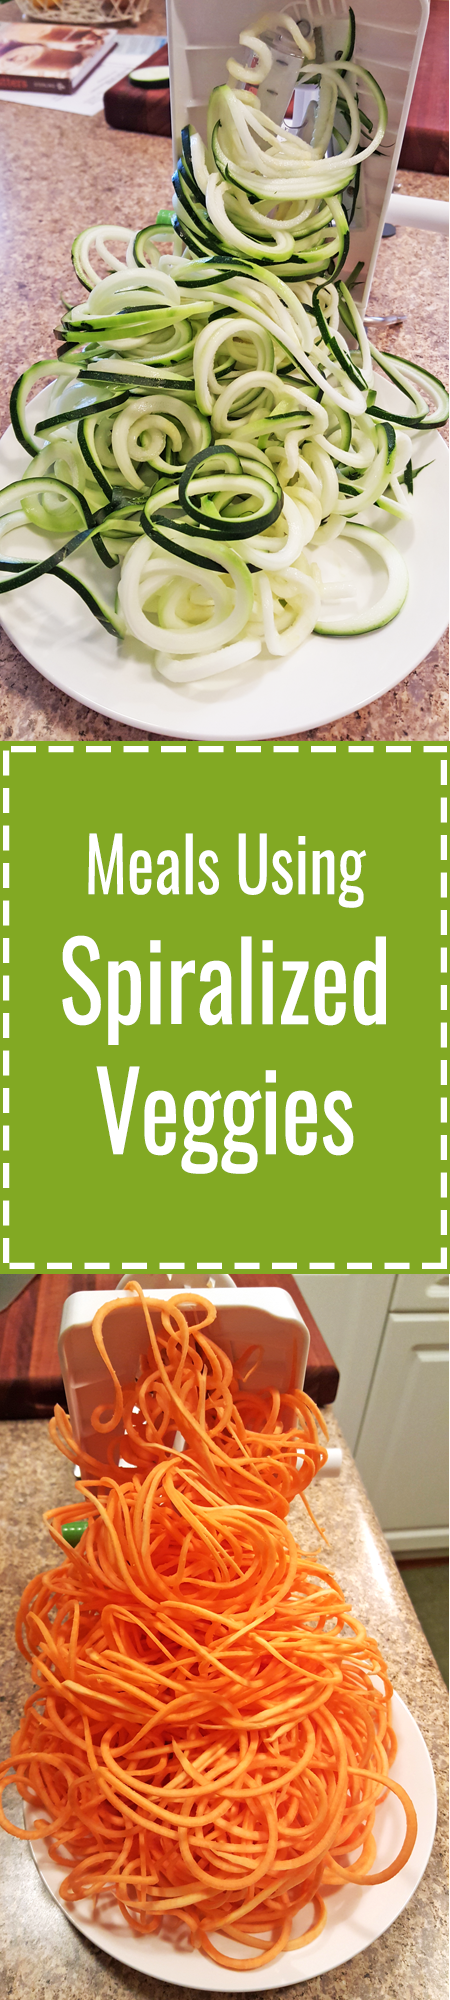 Meals Using Spiralized Veggies